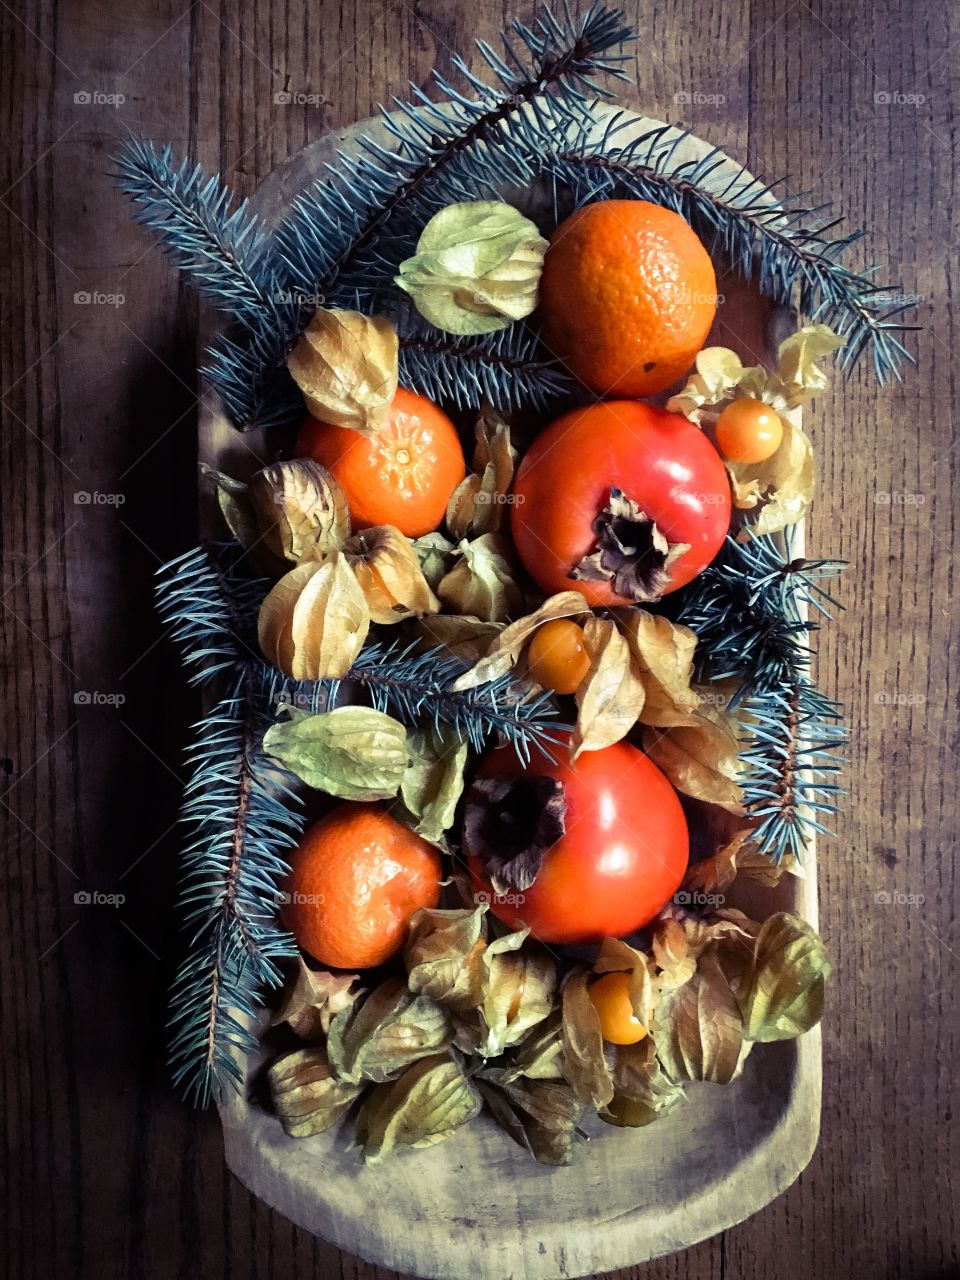 Winter fruit gathered in a wooden plate/bowl